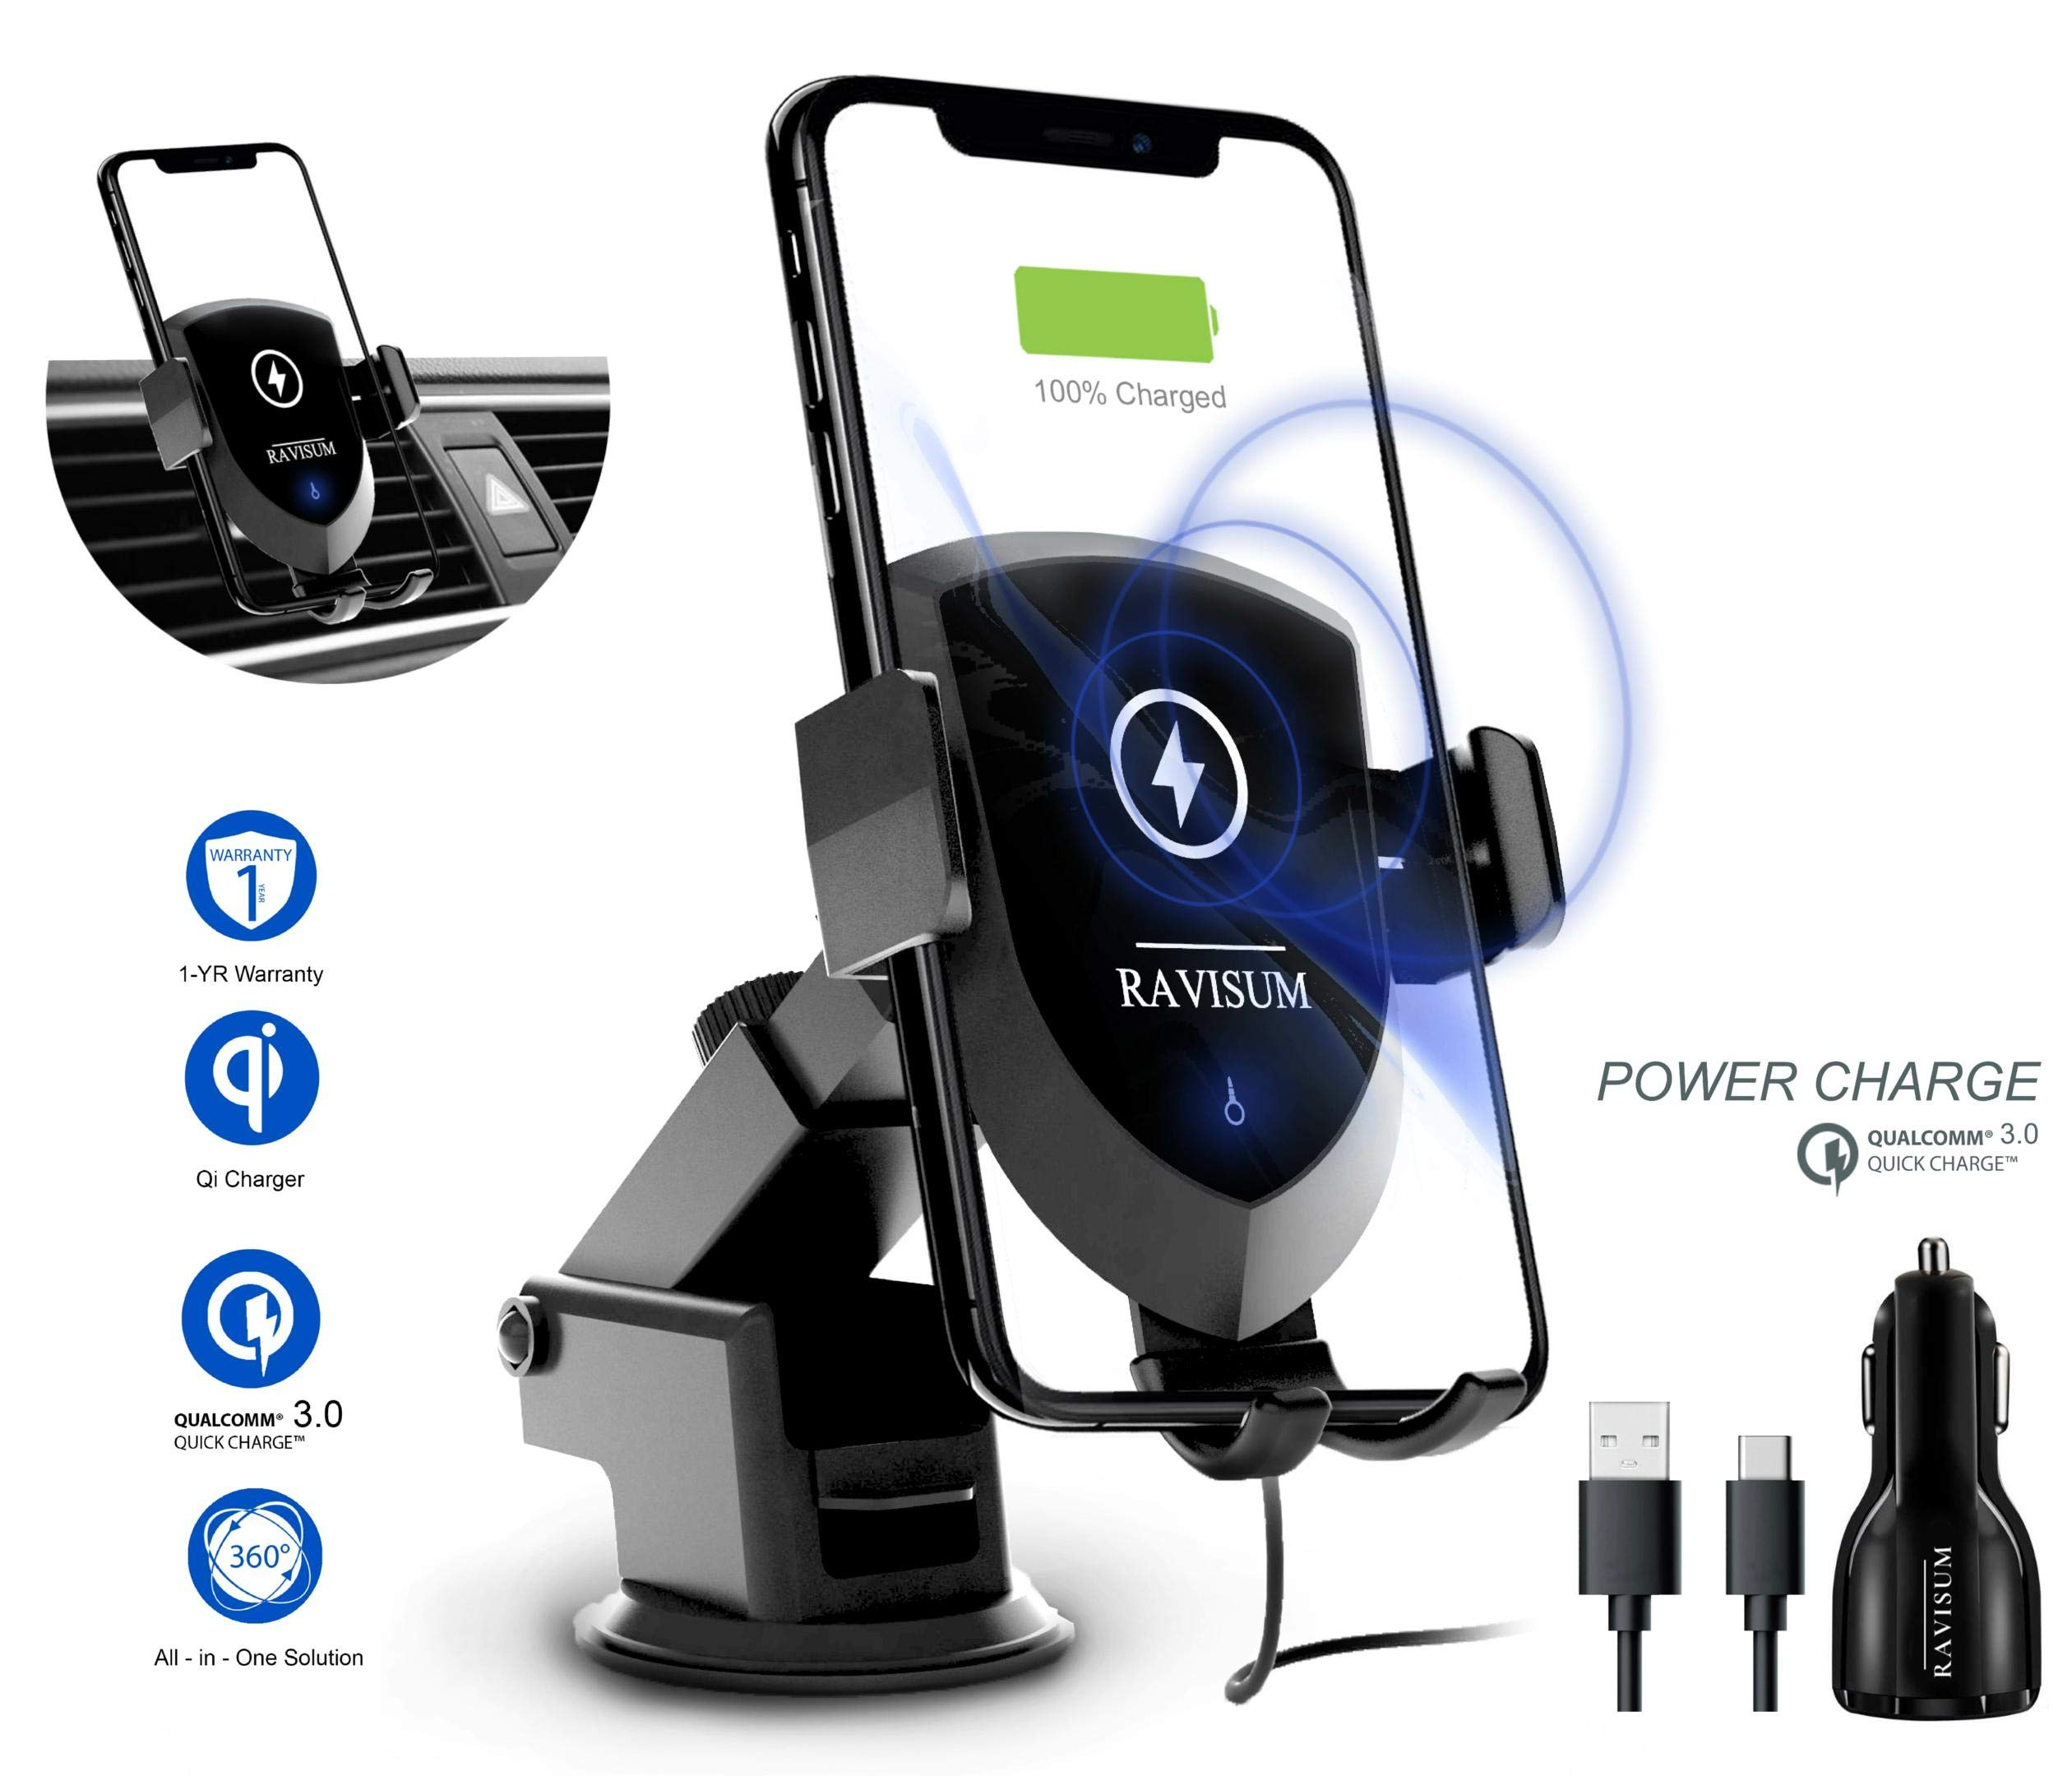 Wireless Car Charger Mount by RAVISUM | 10W 7.5W Fast Charge Car Phone Mount with Dual-USB Car Charger | Windshield & Air Vent Car Mount | Compatible with iPhone X/XS/MAX/8/8+ Samsung S8/S9/S10 Series by RAVISUM